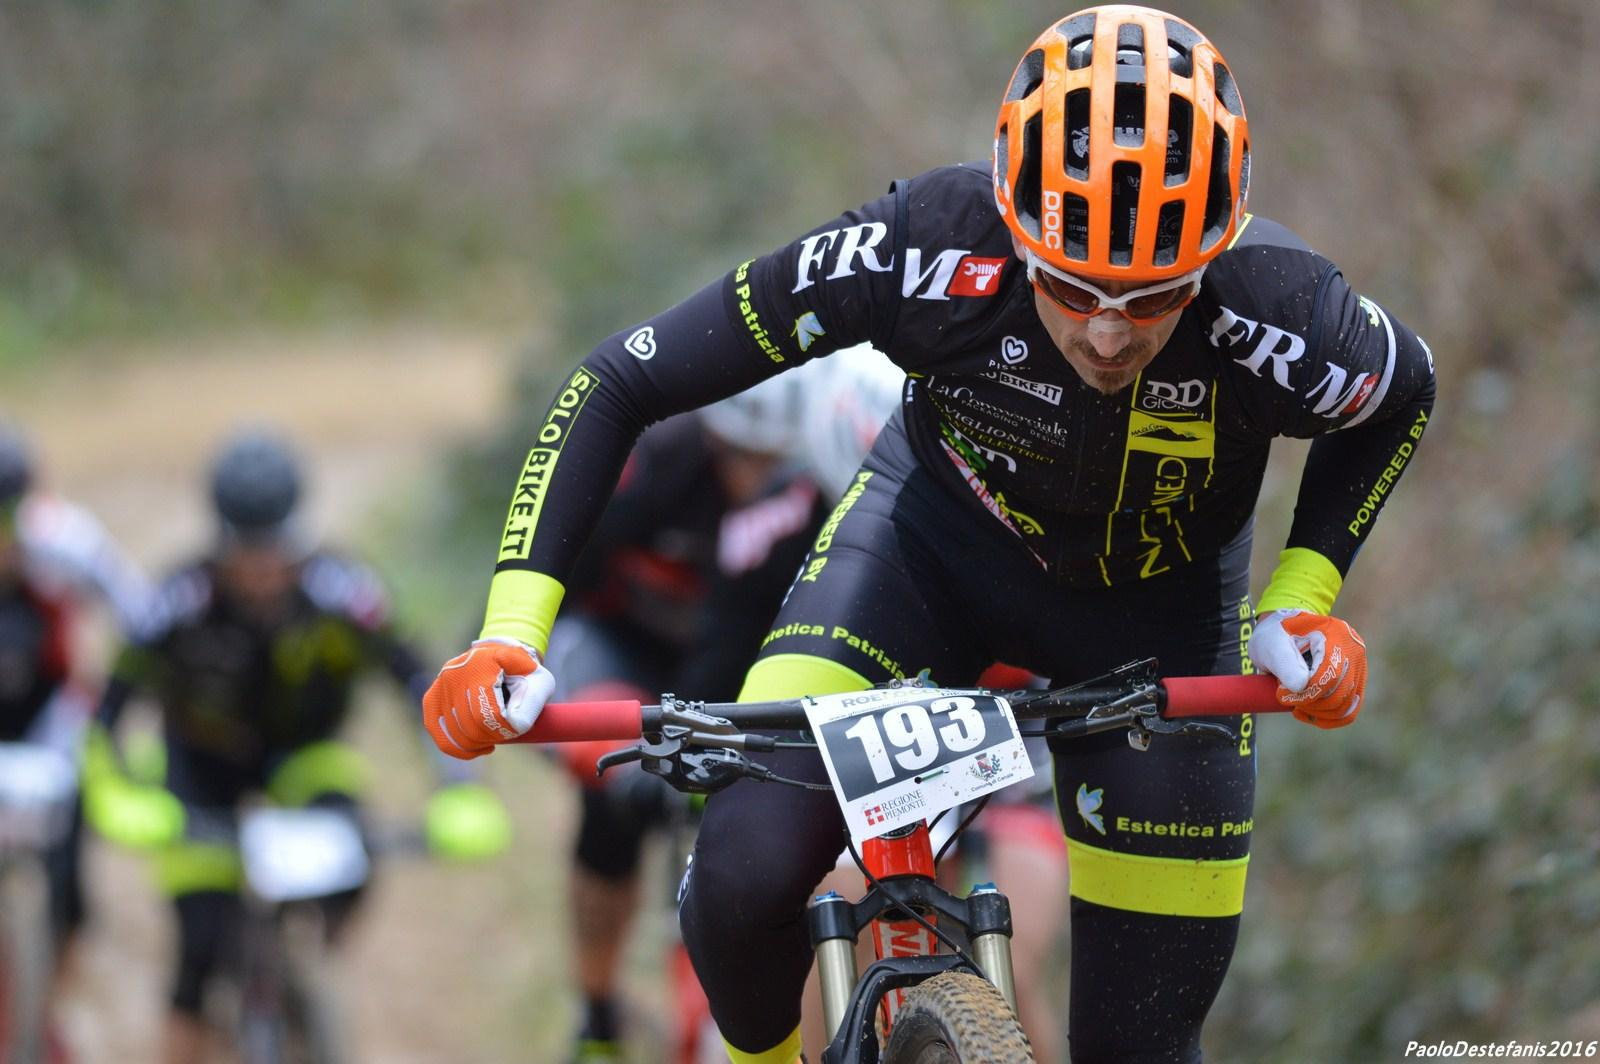 Gran Fondo Roerocche gara mountain bike